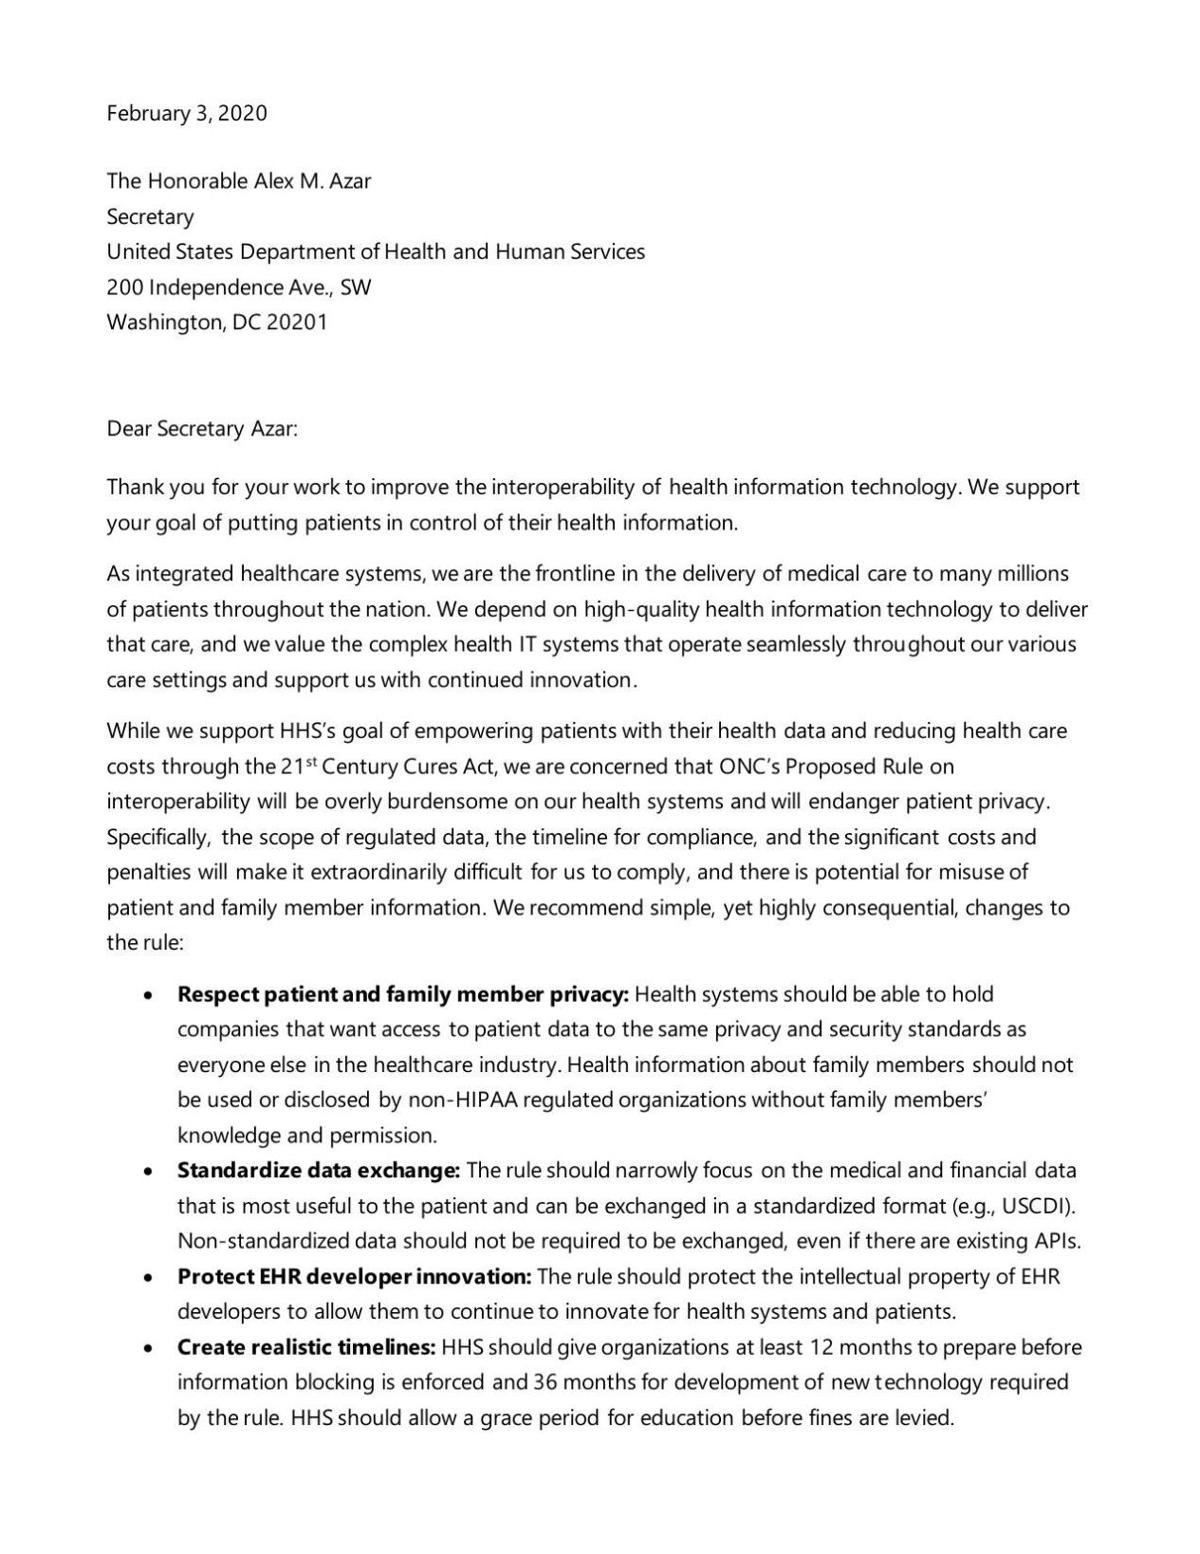 Letter from some Epic clients to HHS secretary